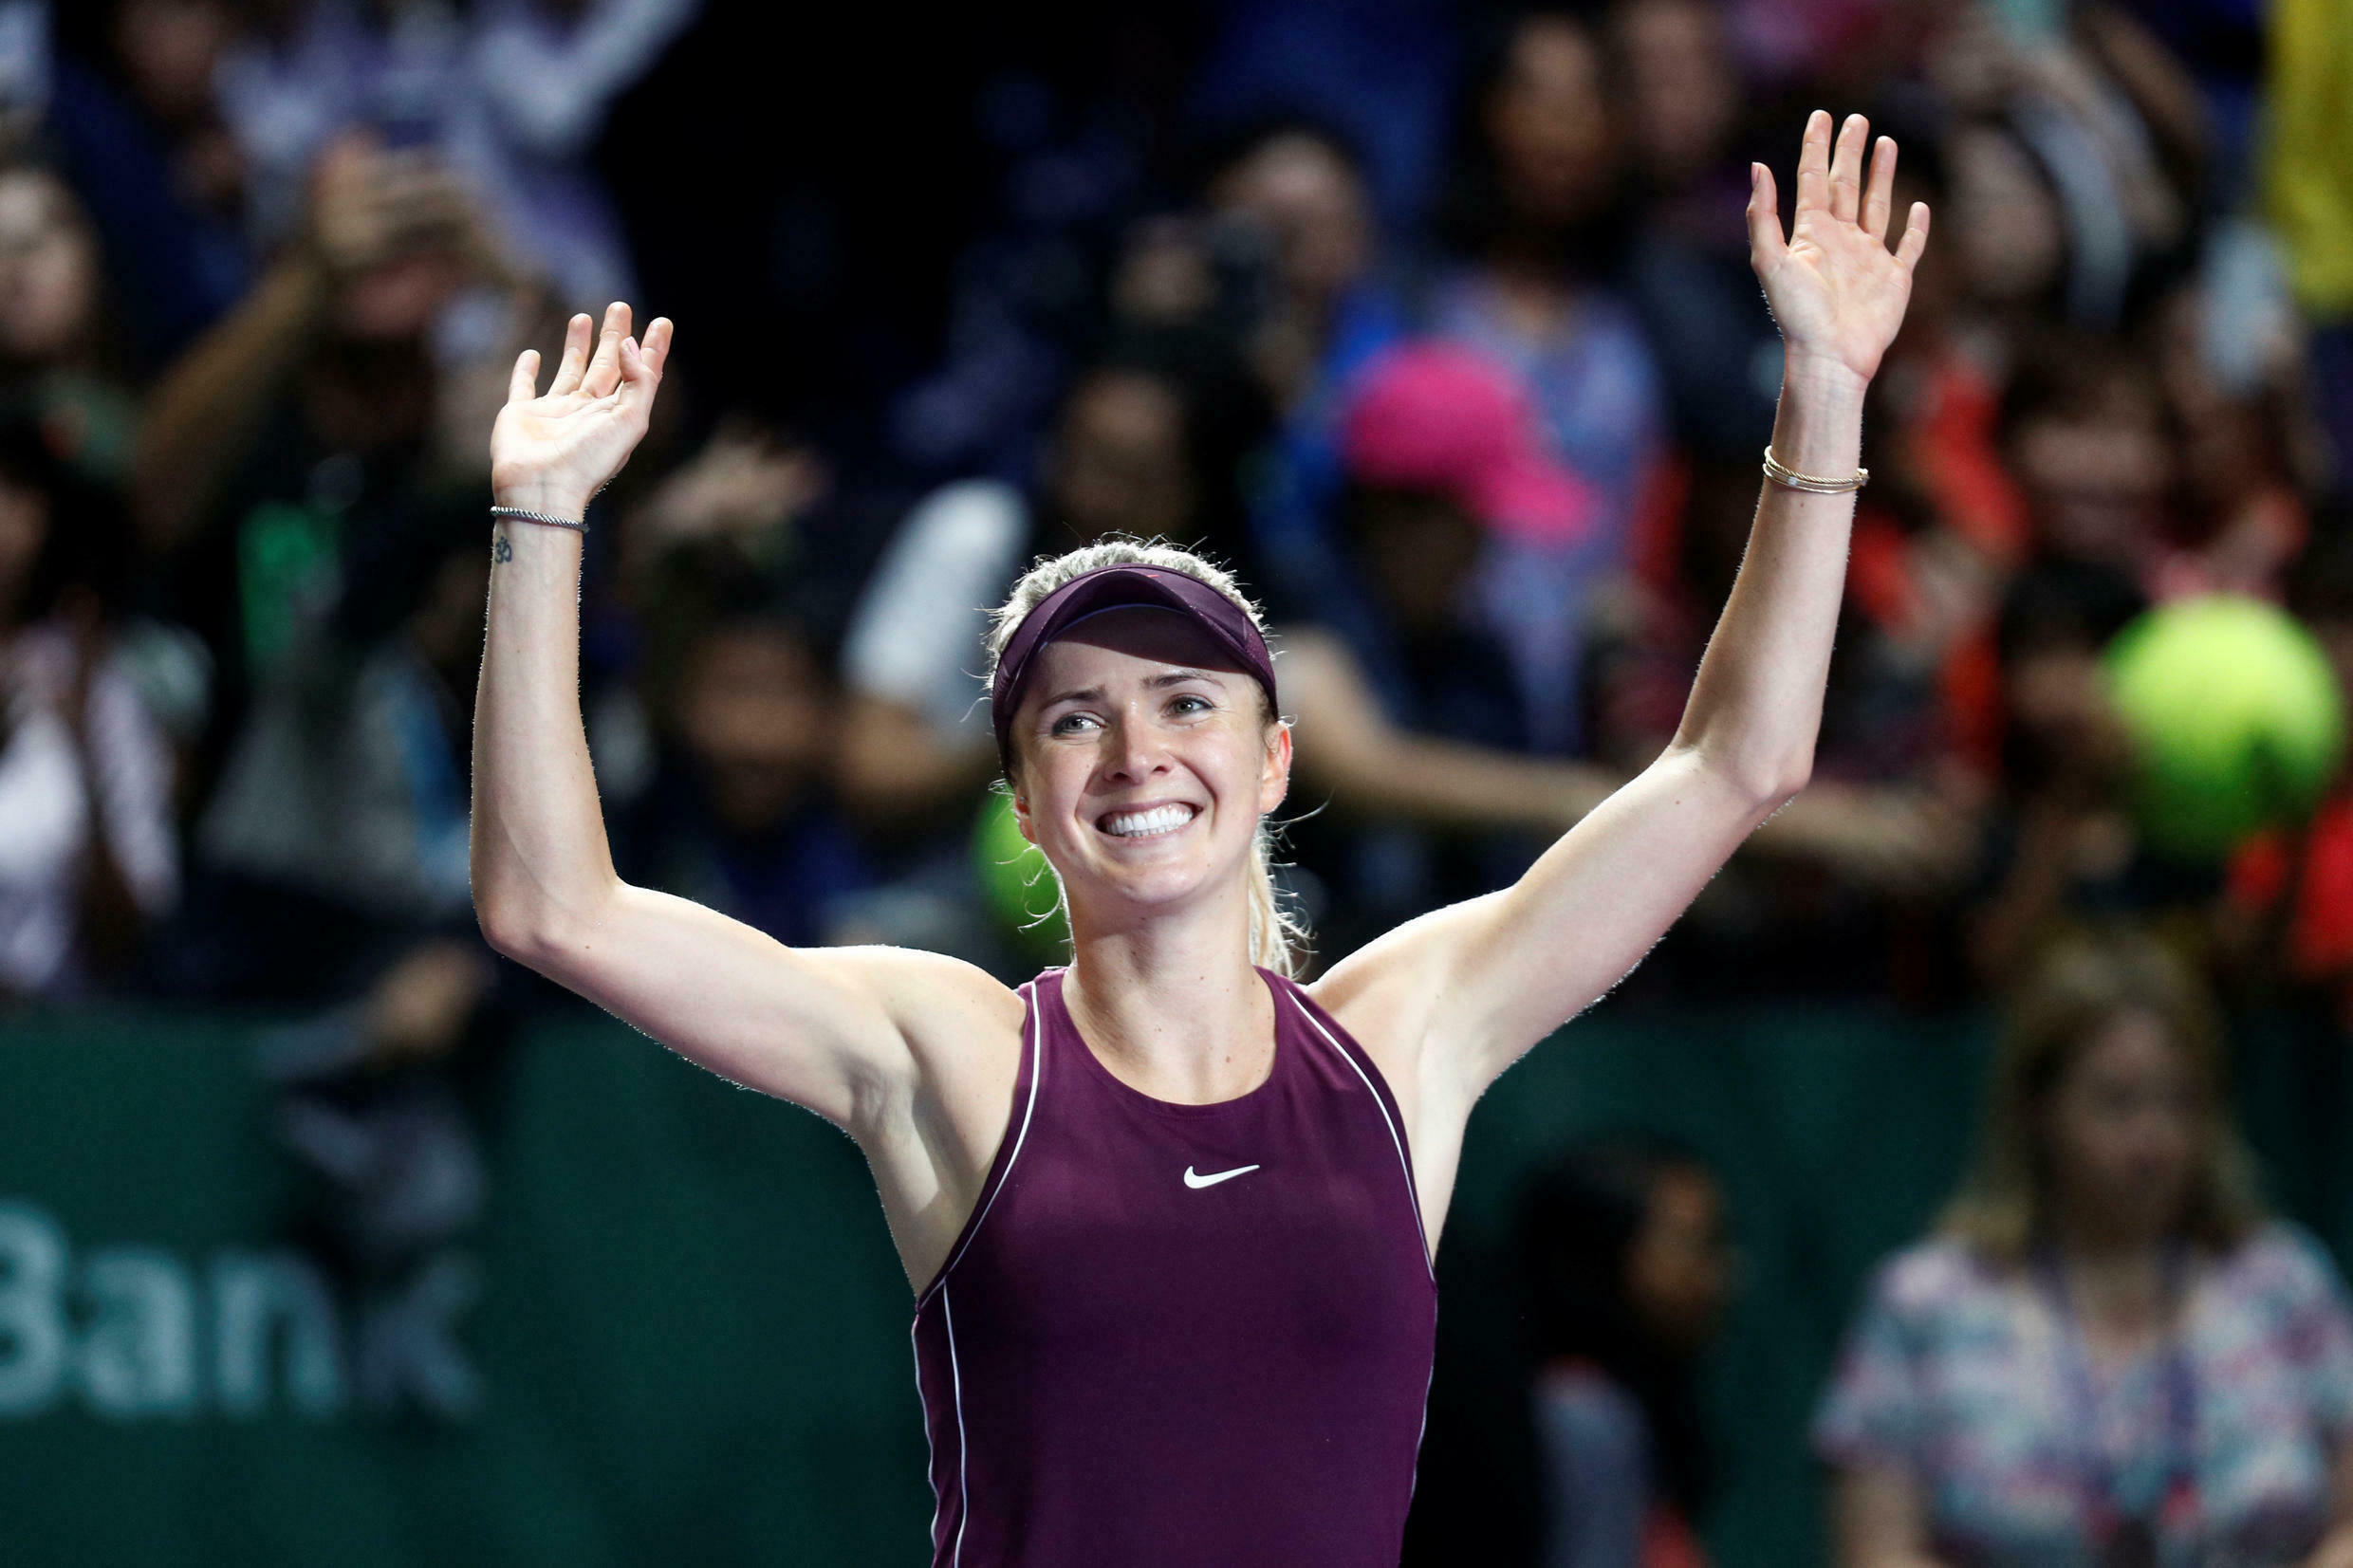 2019 US Open semi-finalist Elina Svitolina was one of two top 10 players to announce their withdrawal from the 2020 tournament.